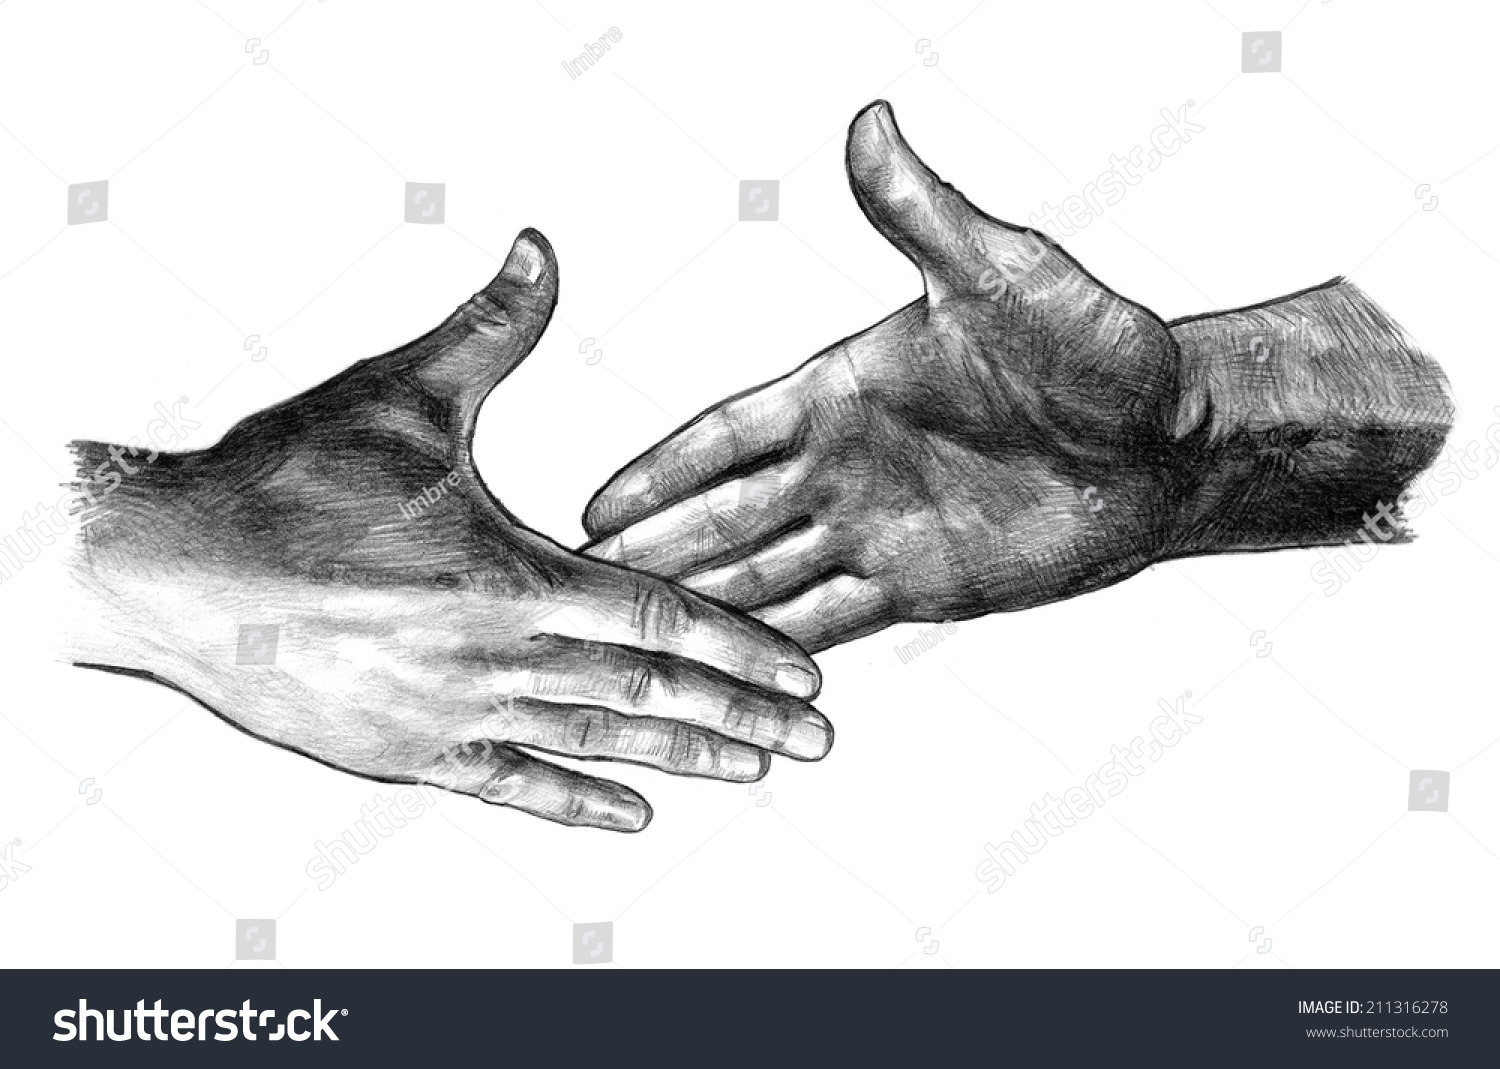 Handshake pencil drawing